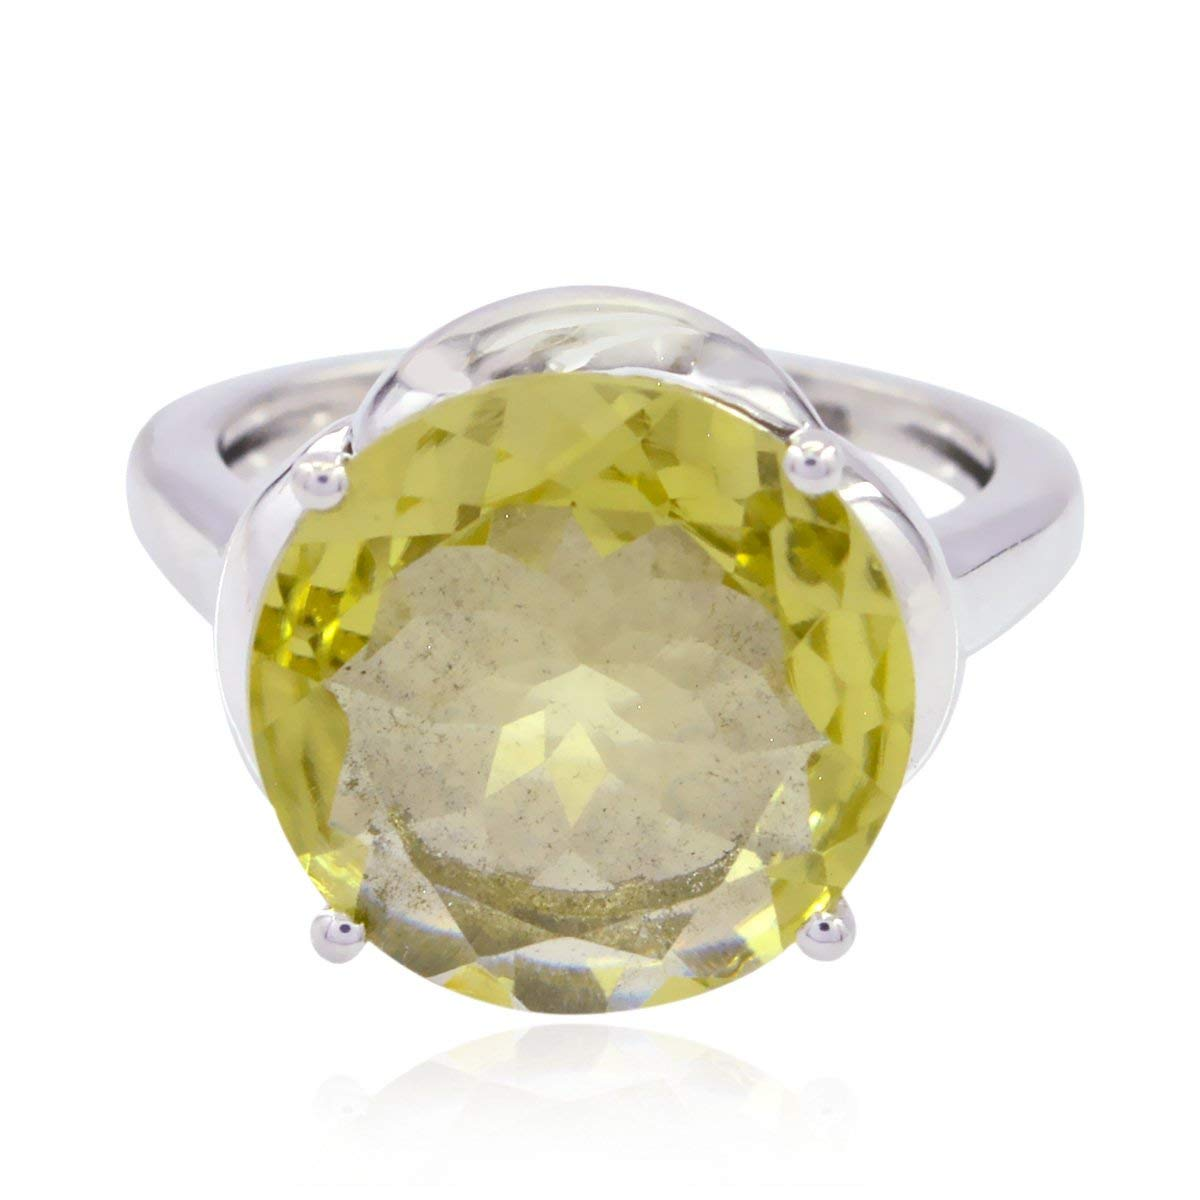 Genuine Gems Round Faceted Lemon-Quartzs Ring - Silber Yellow Lemon-Quartzs Genuine Gems Ring - Supply Jewelry Greatest Seller Gift for Mother Rings -US 4